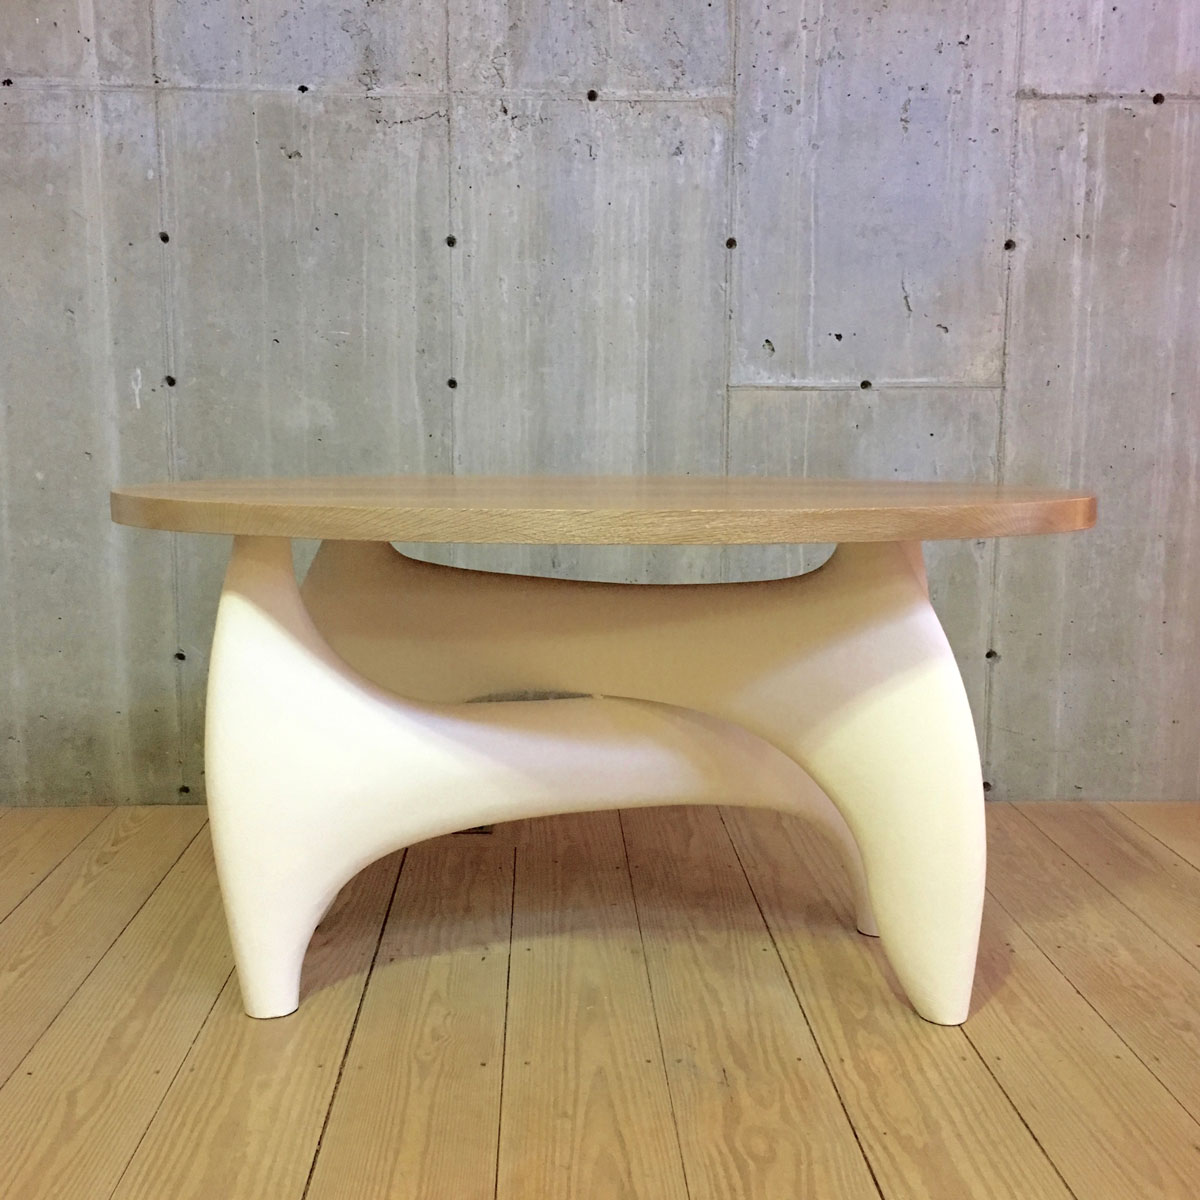 Bi Sculpteur Coffee Table Base with Gesso Finish and Oval Natural Cerused Oak Top $7,600